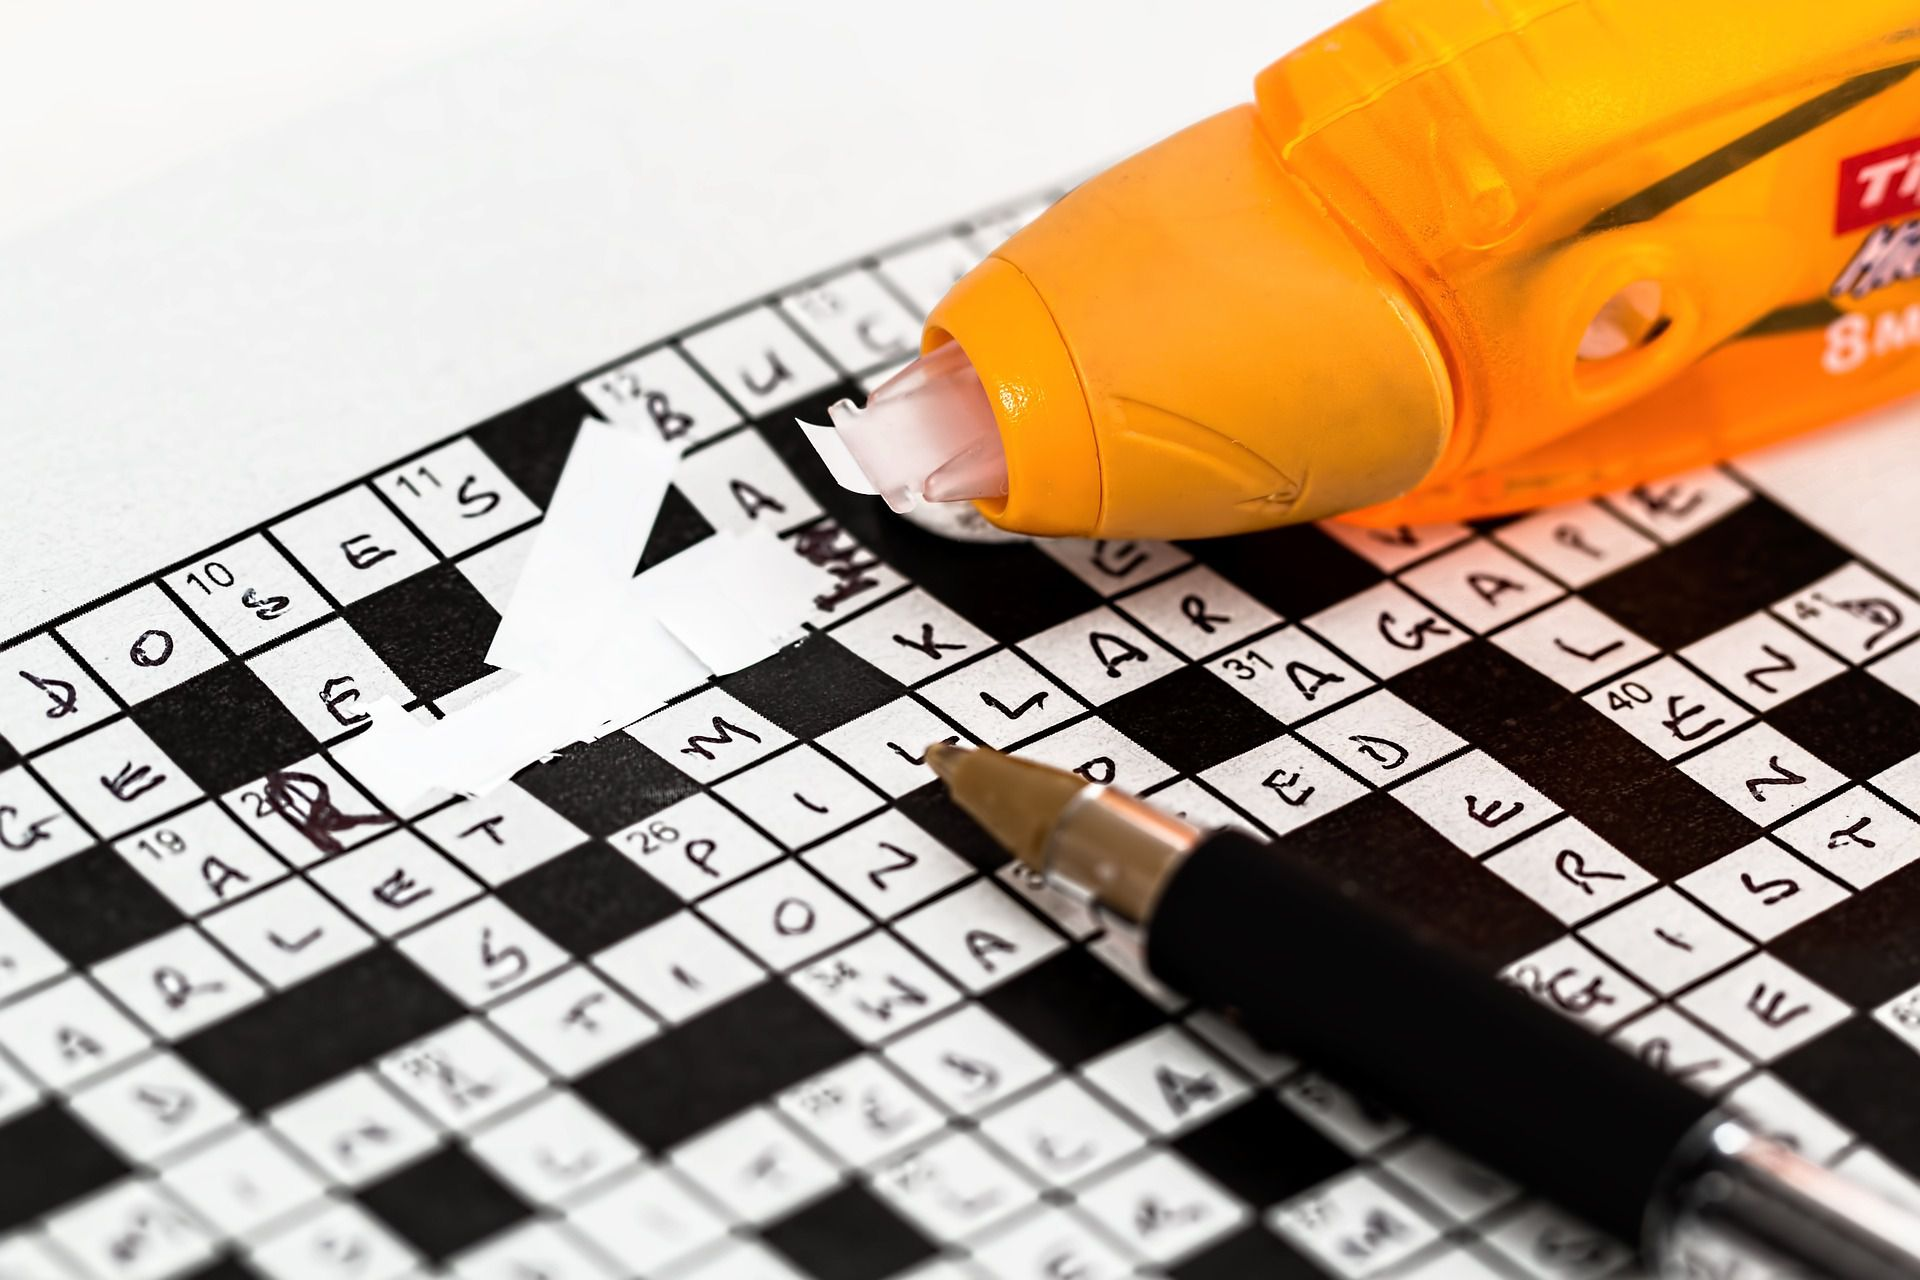 Mistake on crossword puzzle covered up by white-out